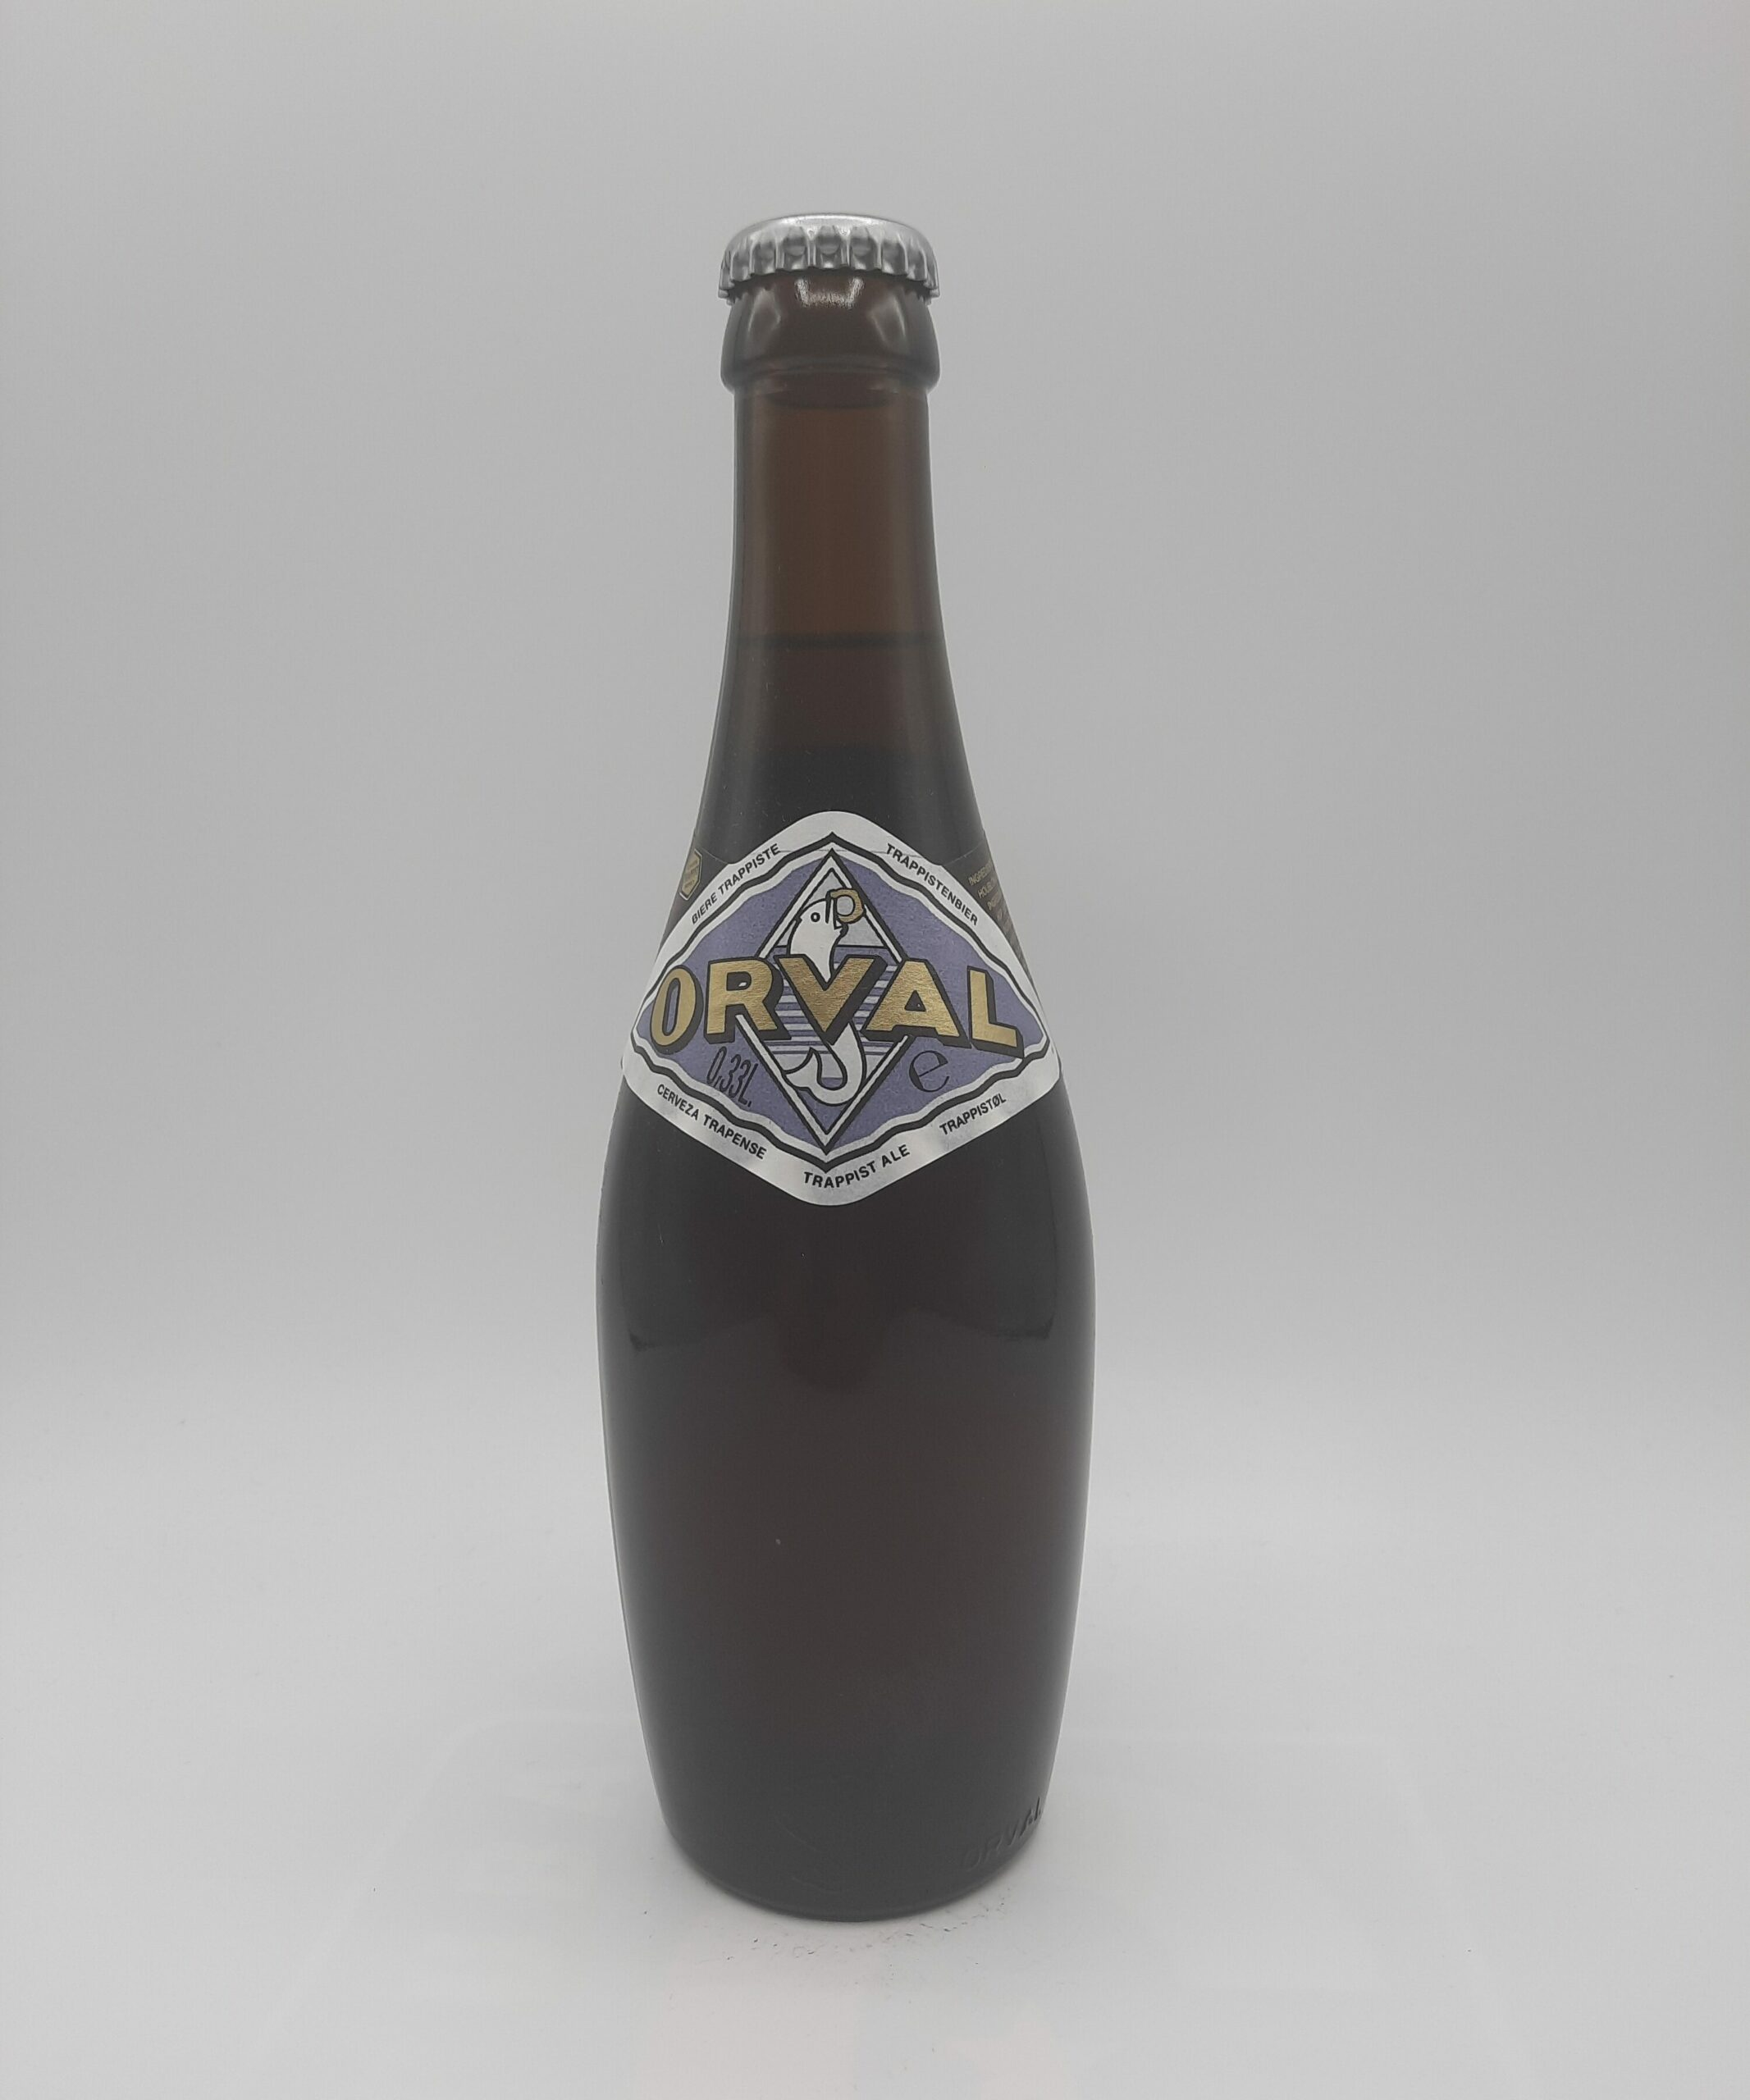 Image Orval